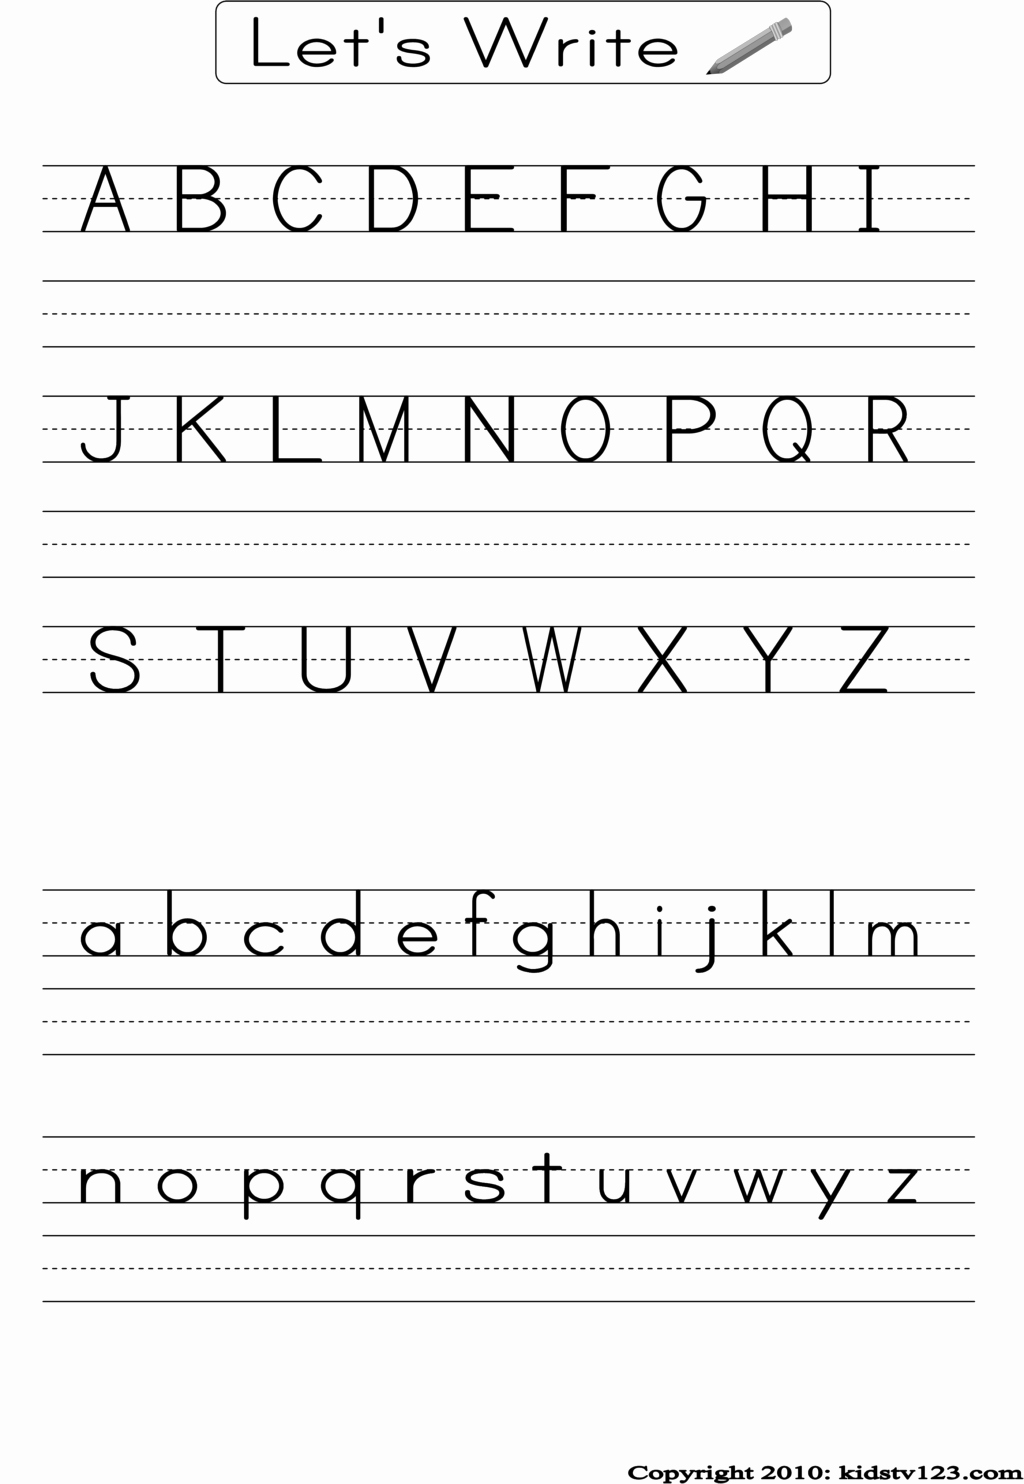 Alphabet Tracing Worksheets Pdf Awesome Handwriting Worksheet Pdf 5 Free Handwriting Practice